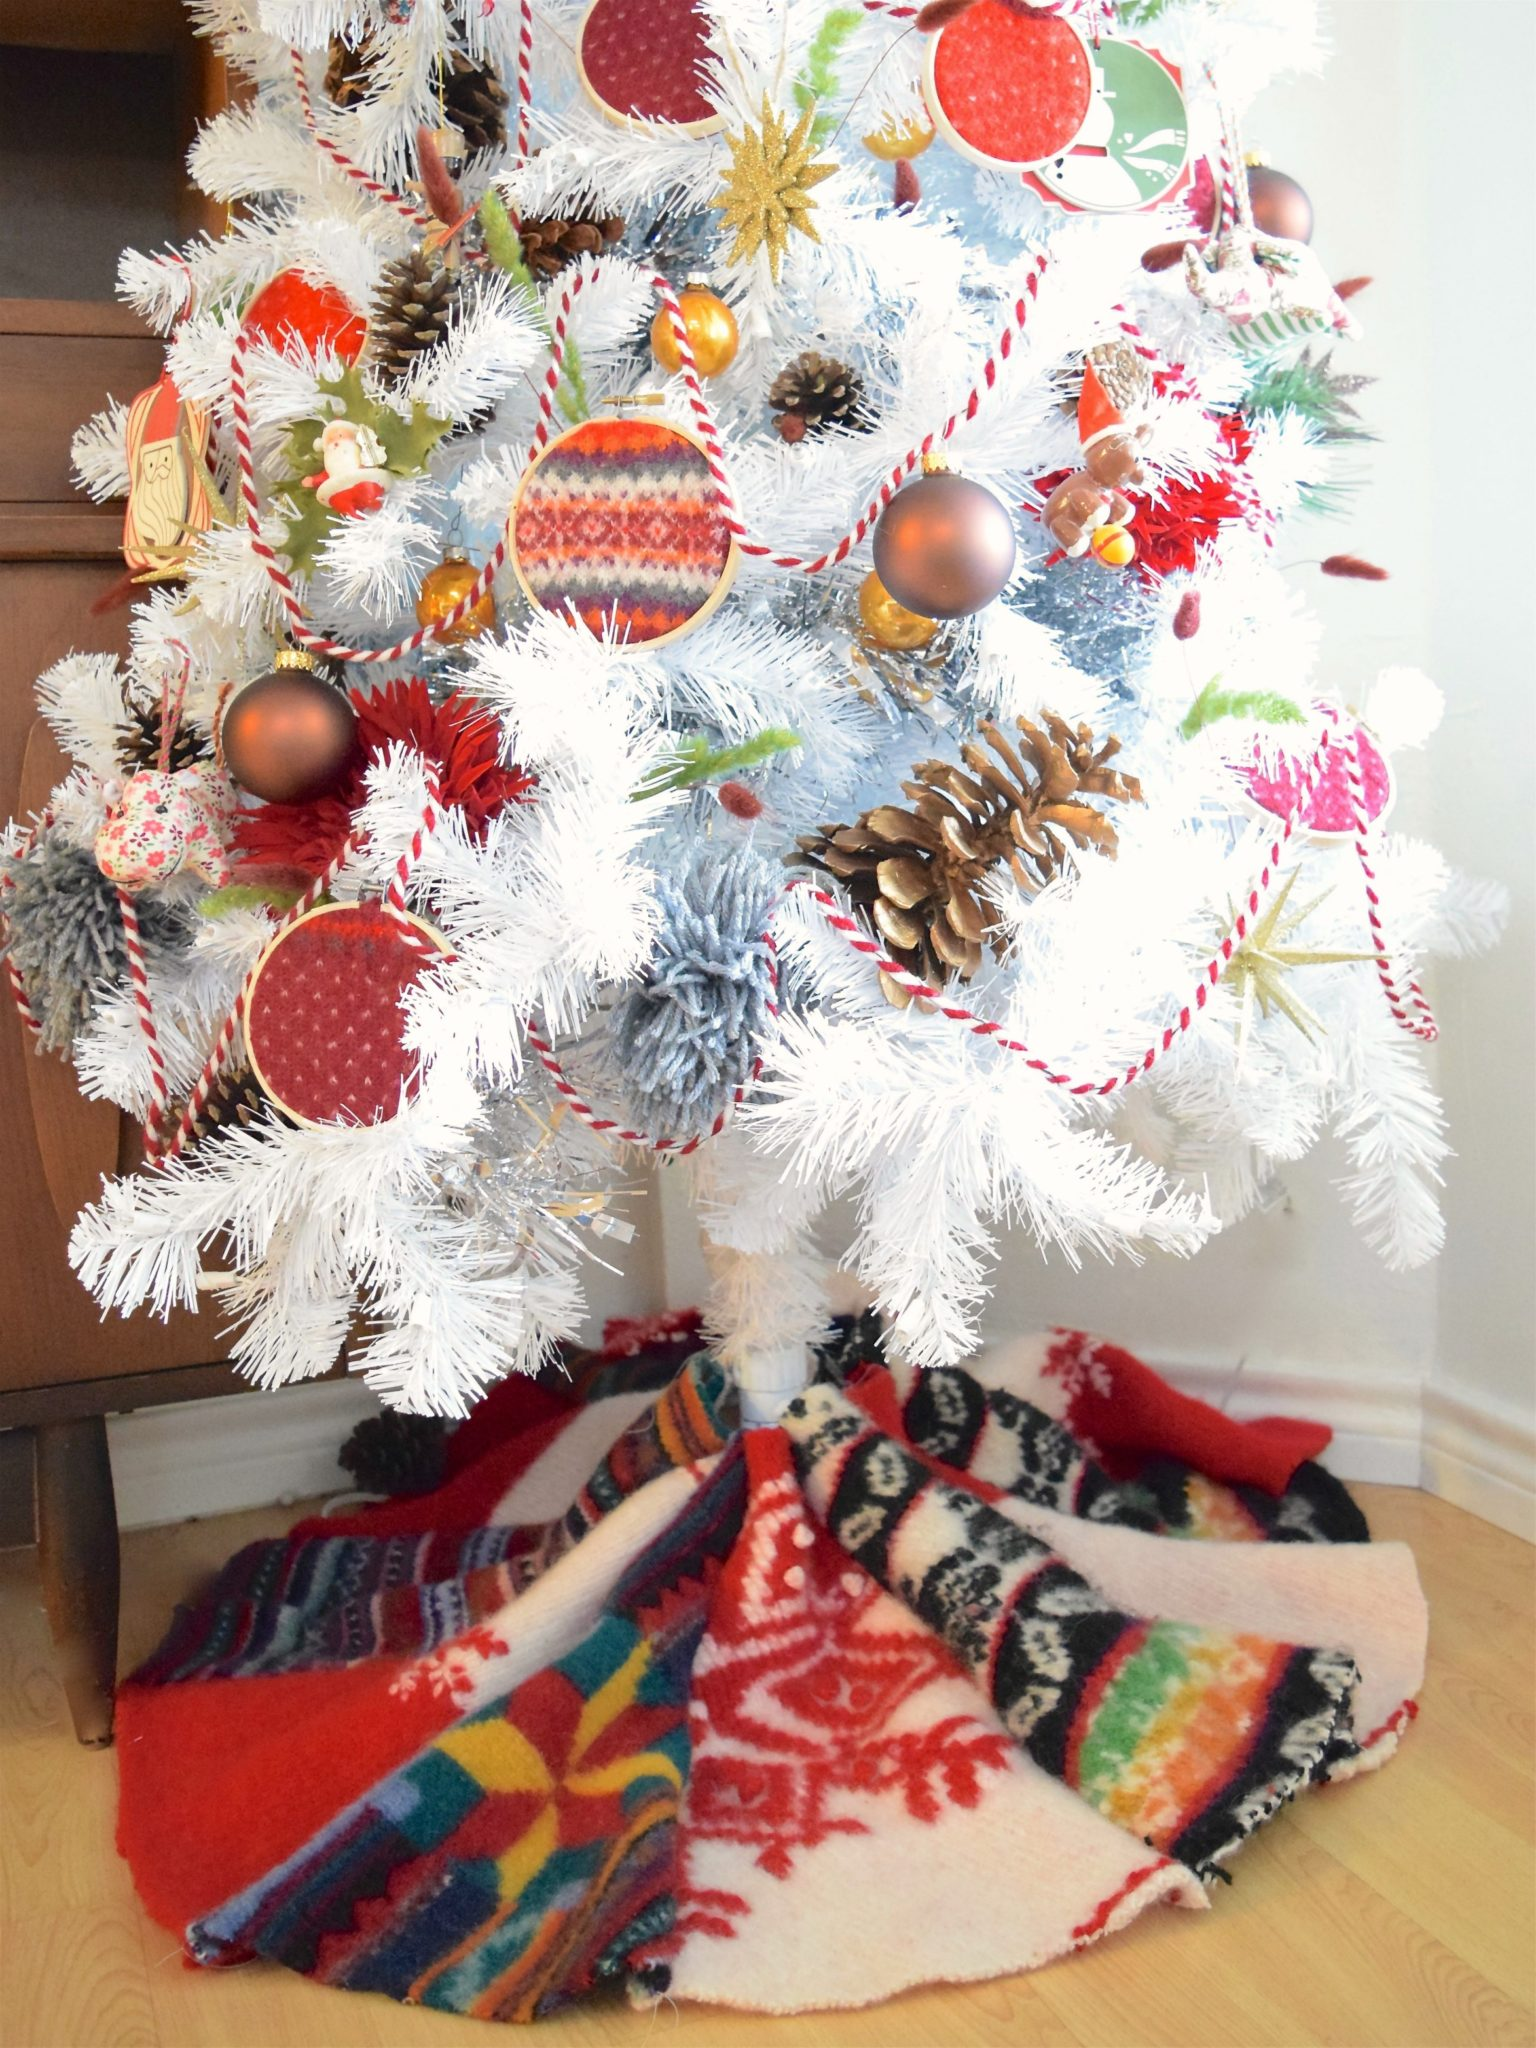 DIY Christmas tree skirt made from a felted wool sweater by Jennifer Perkins